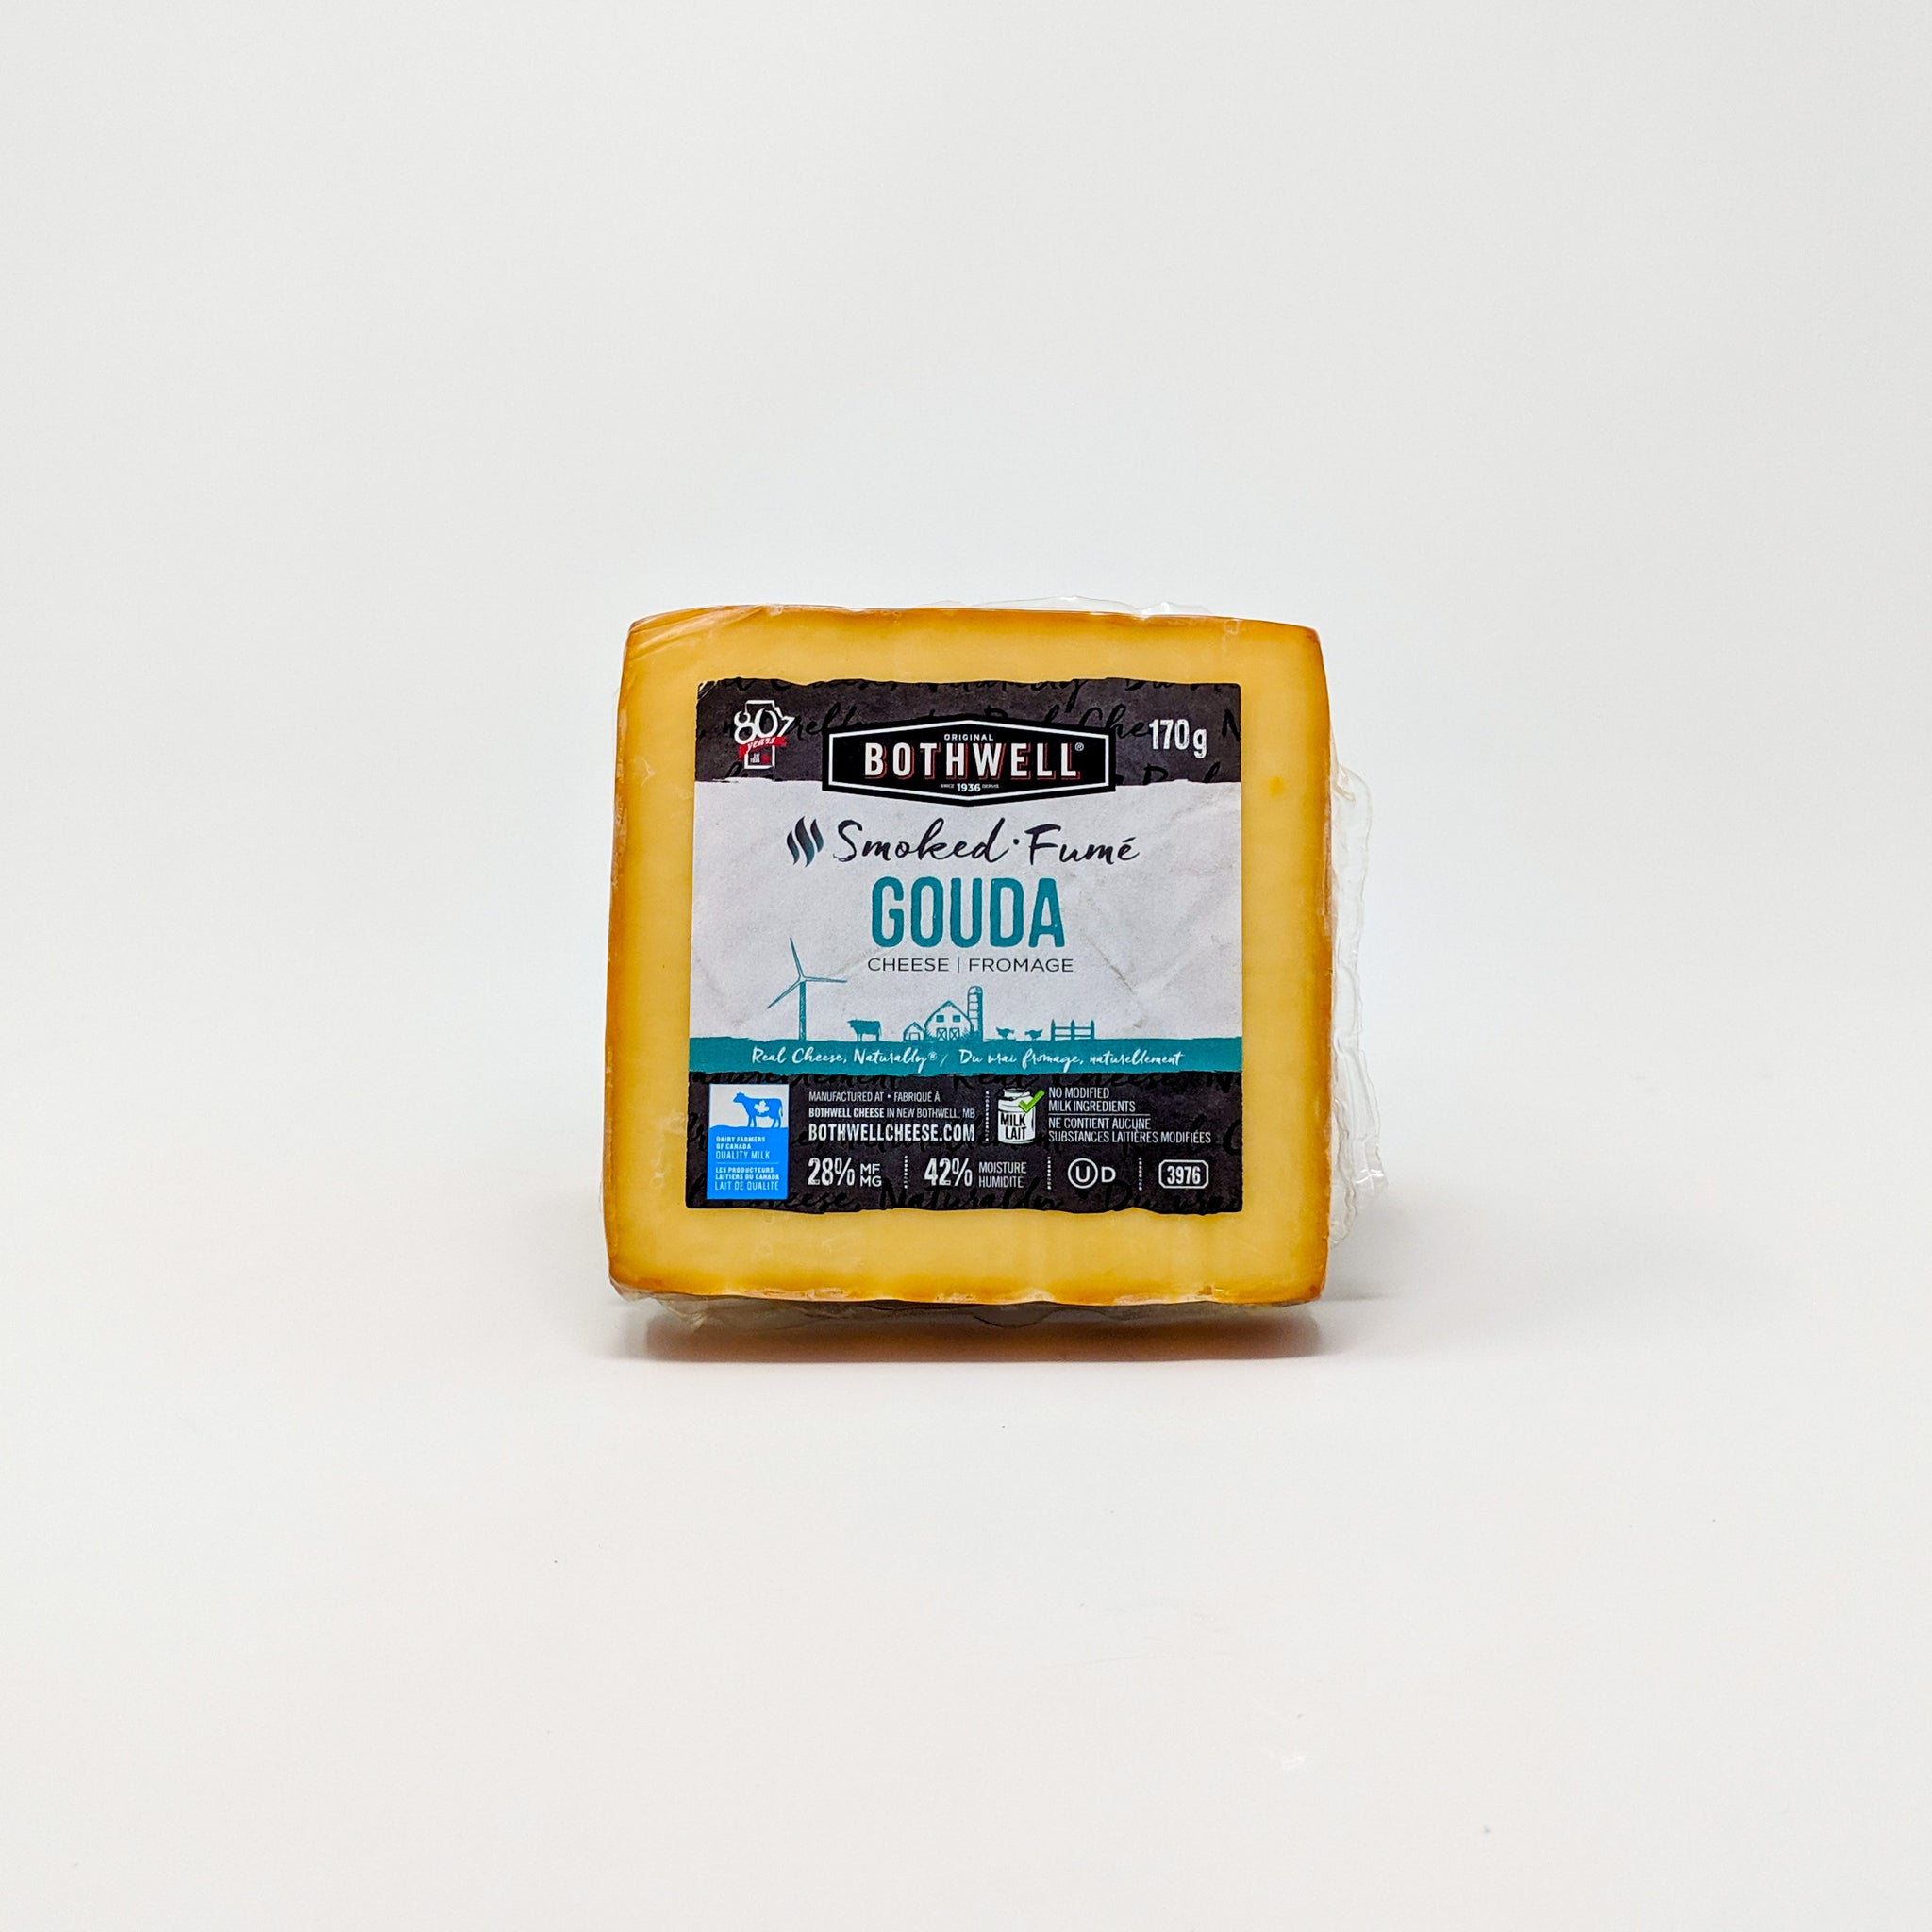 Smoked Gouda 170g - Bothwell Cheese